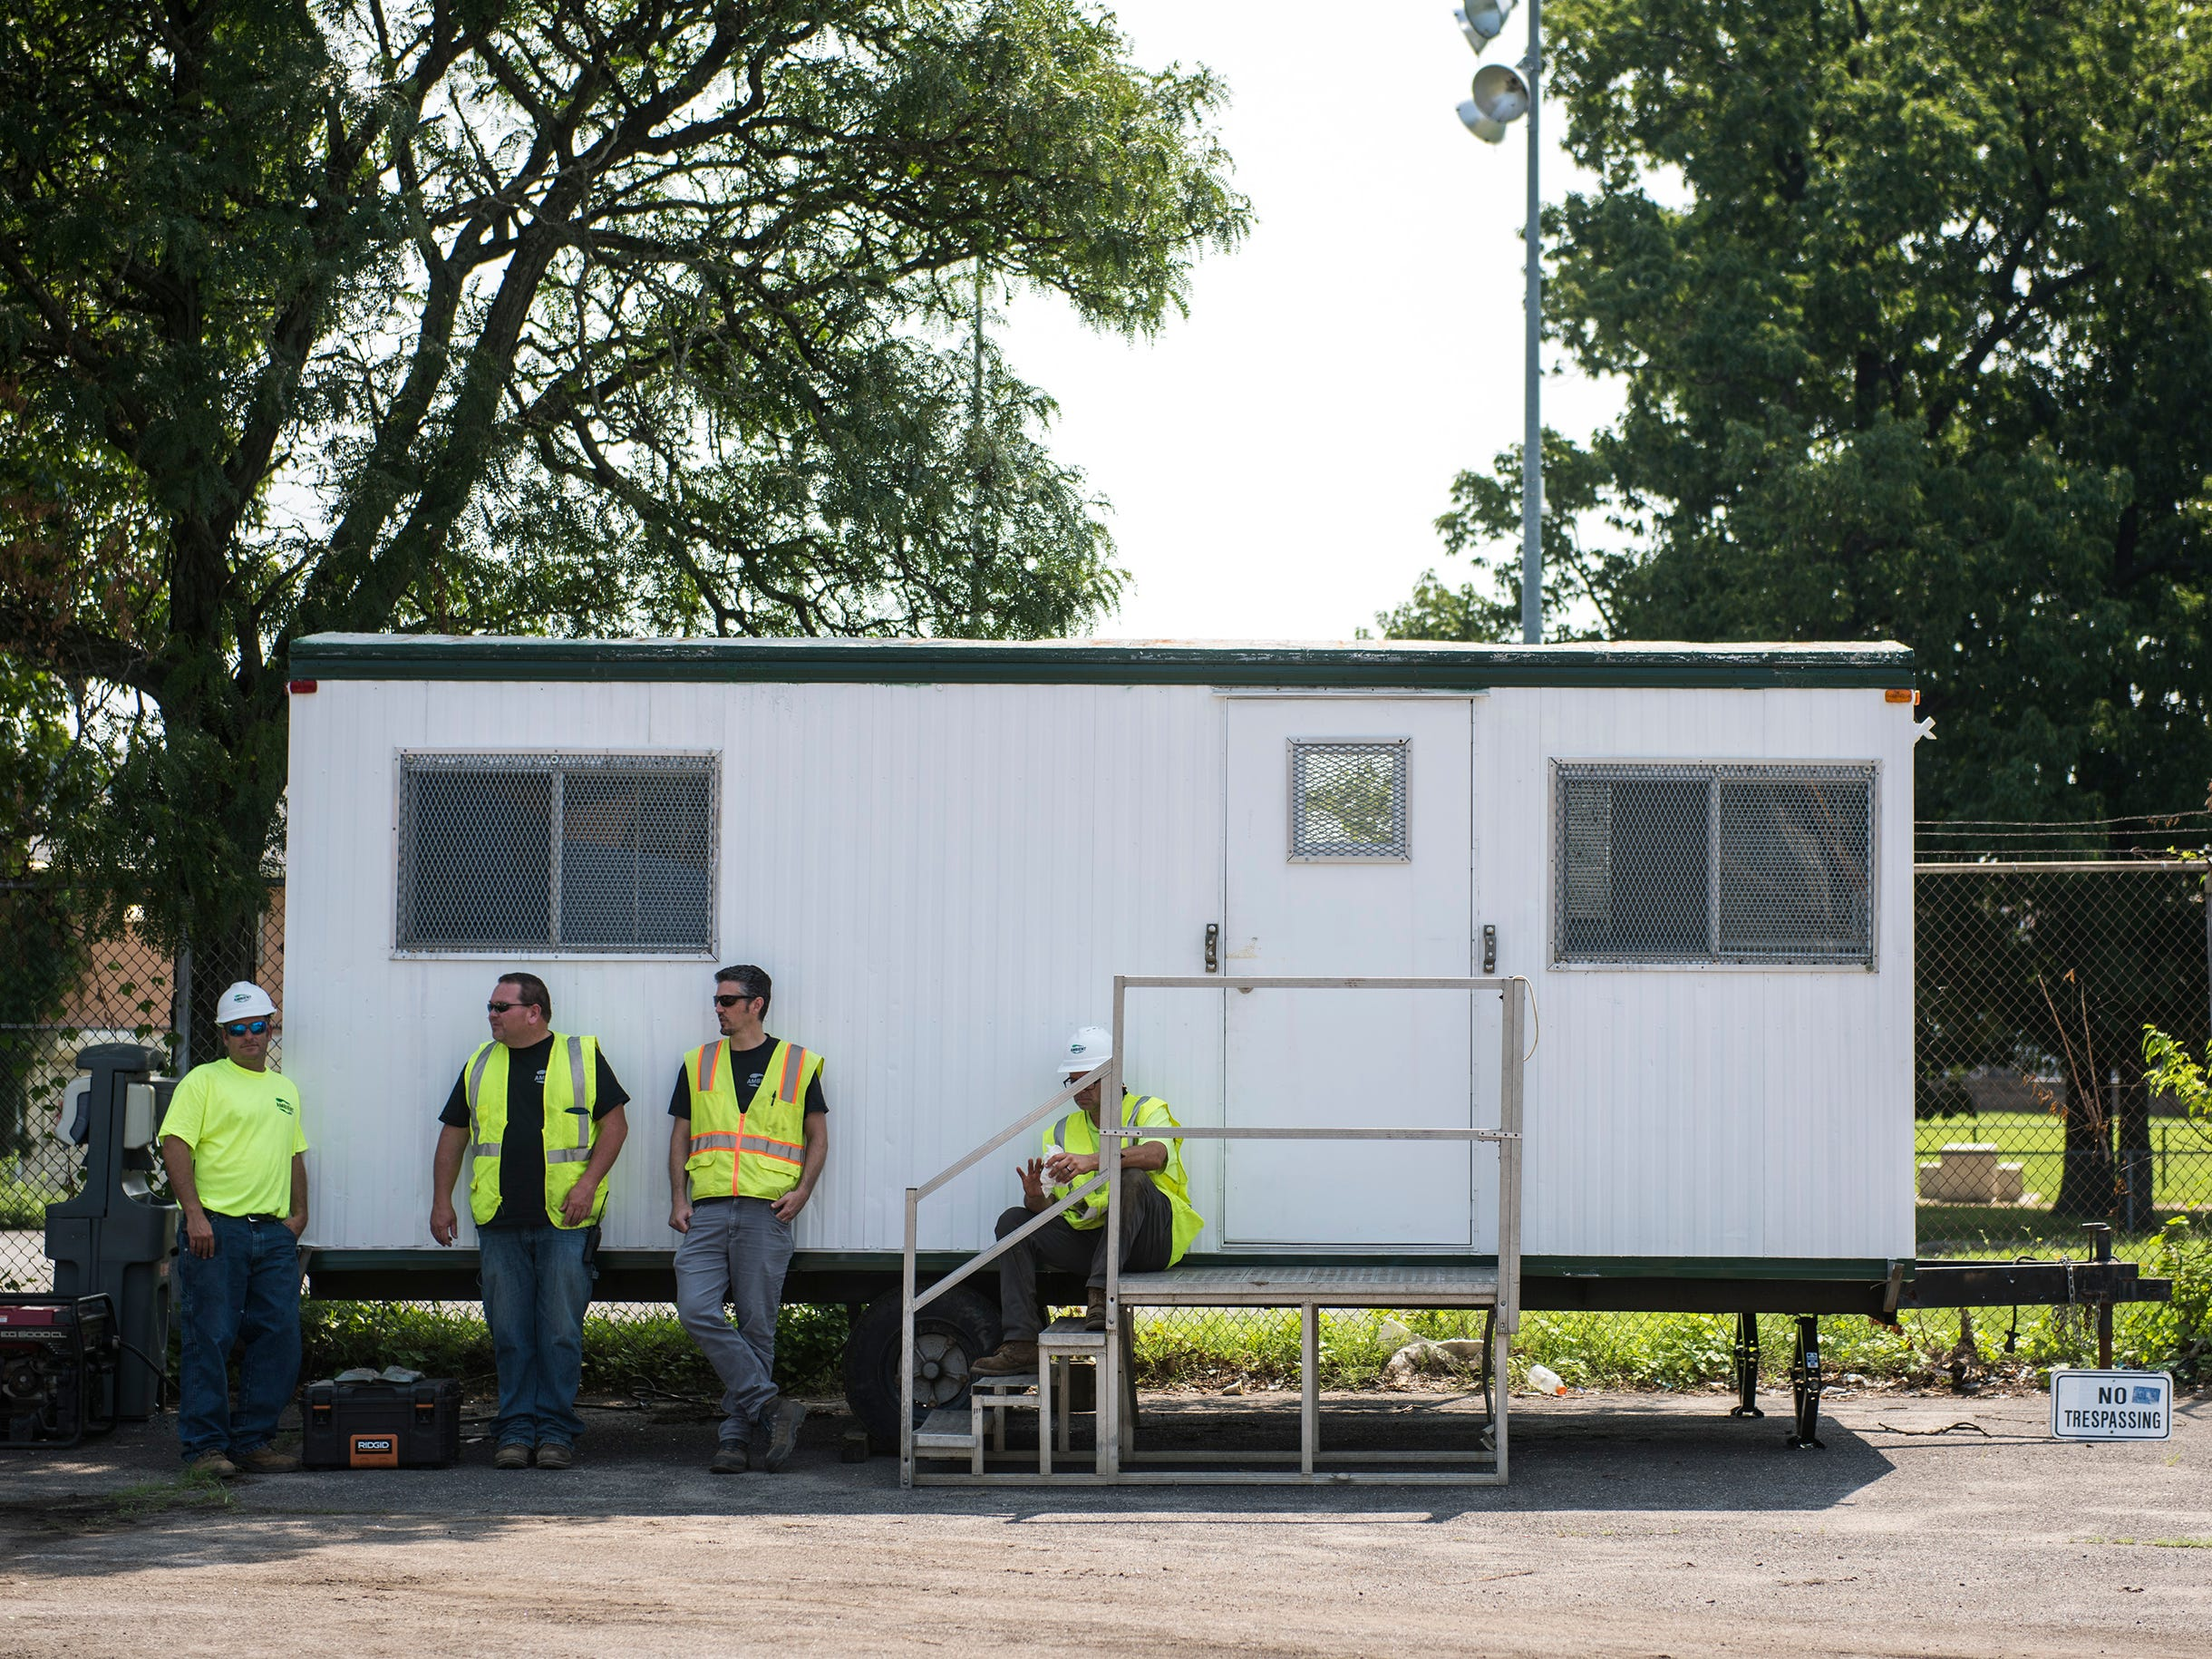 A crew stands by as a press conference is held at the Camden Labs site Wednesday, Aug. 15, 2018 in Camden, N.J. The former toxic and illegal dumping site will be cleaned and cleared to make way for recreational open space.